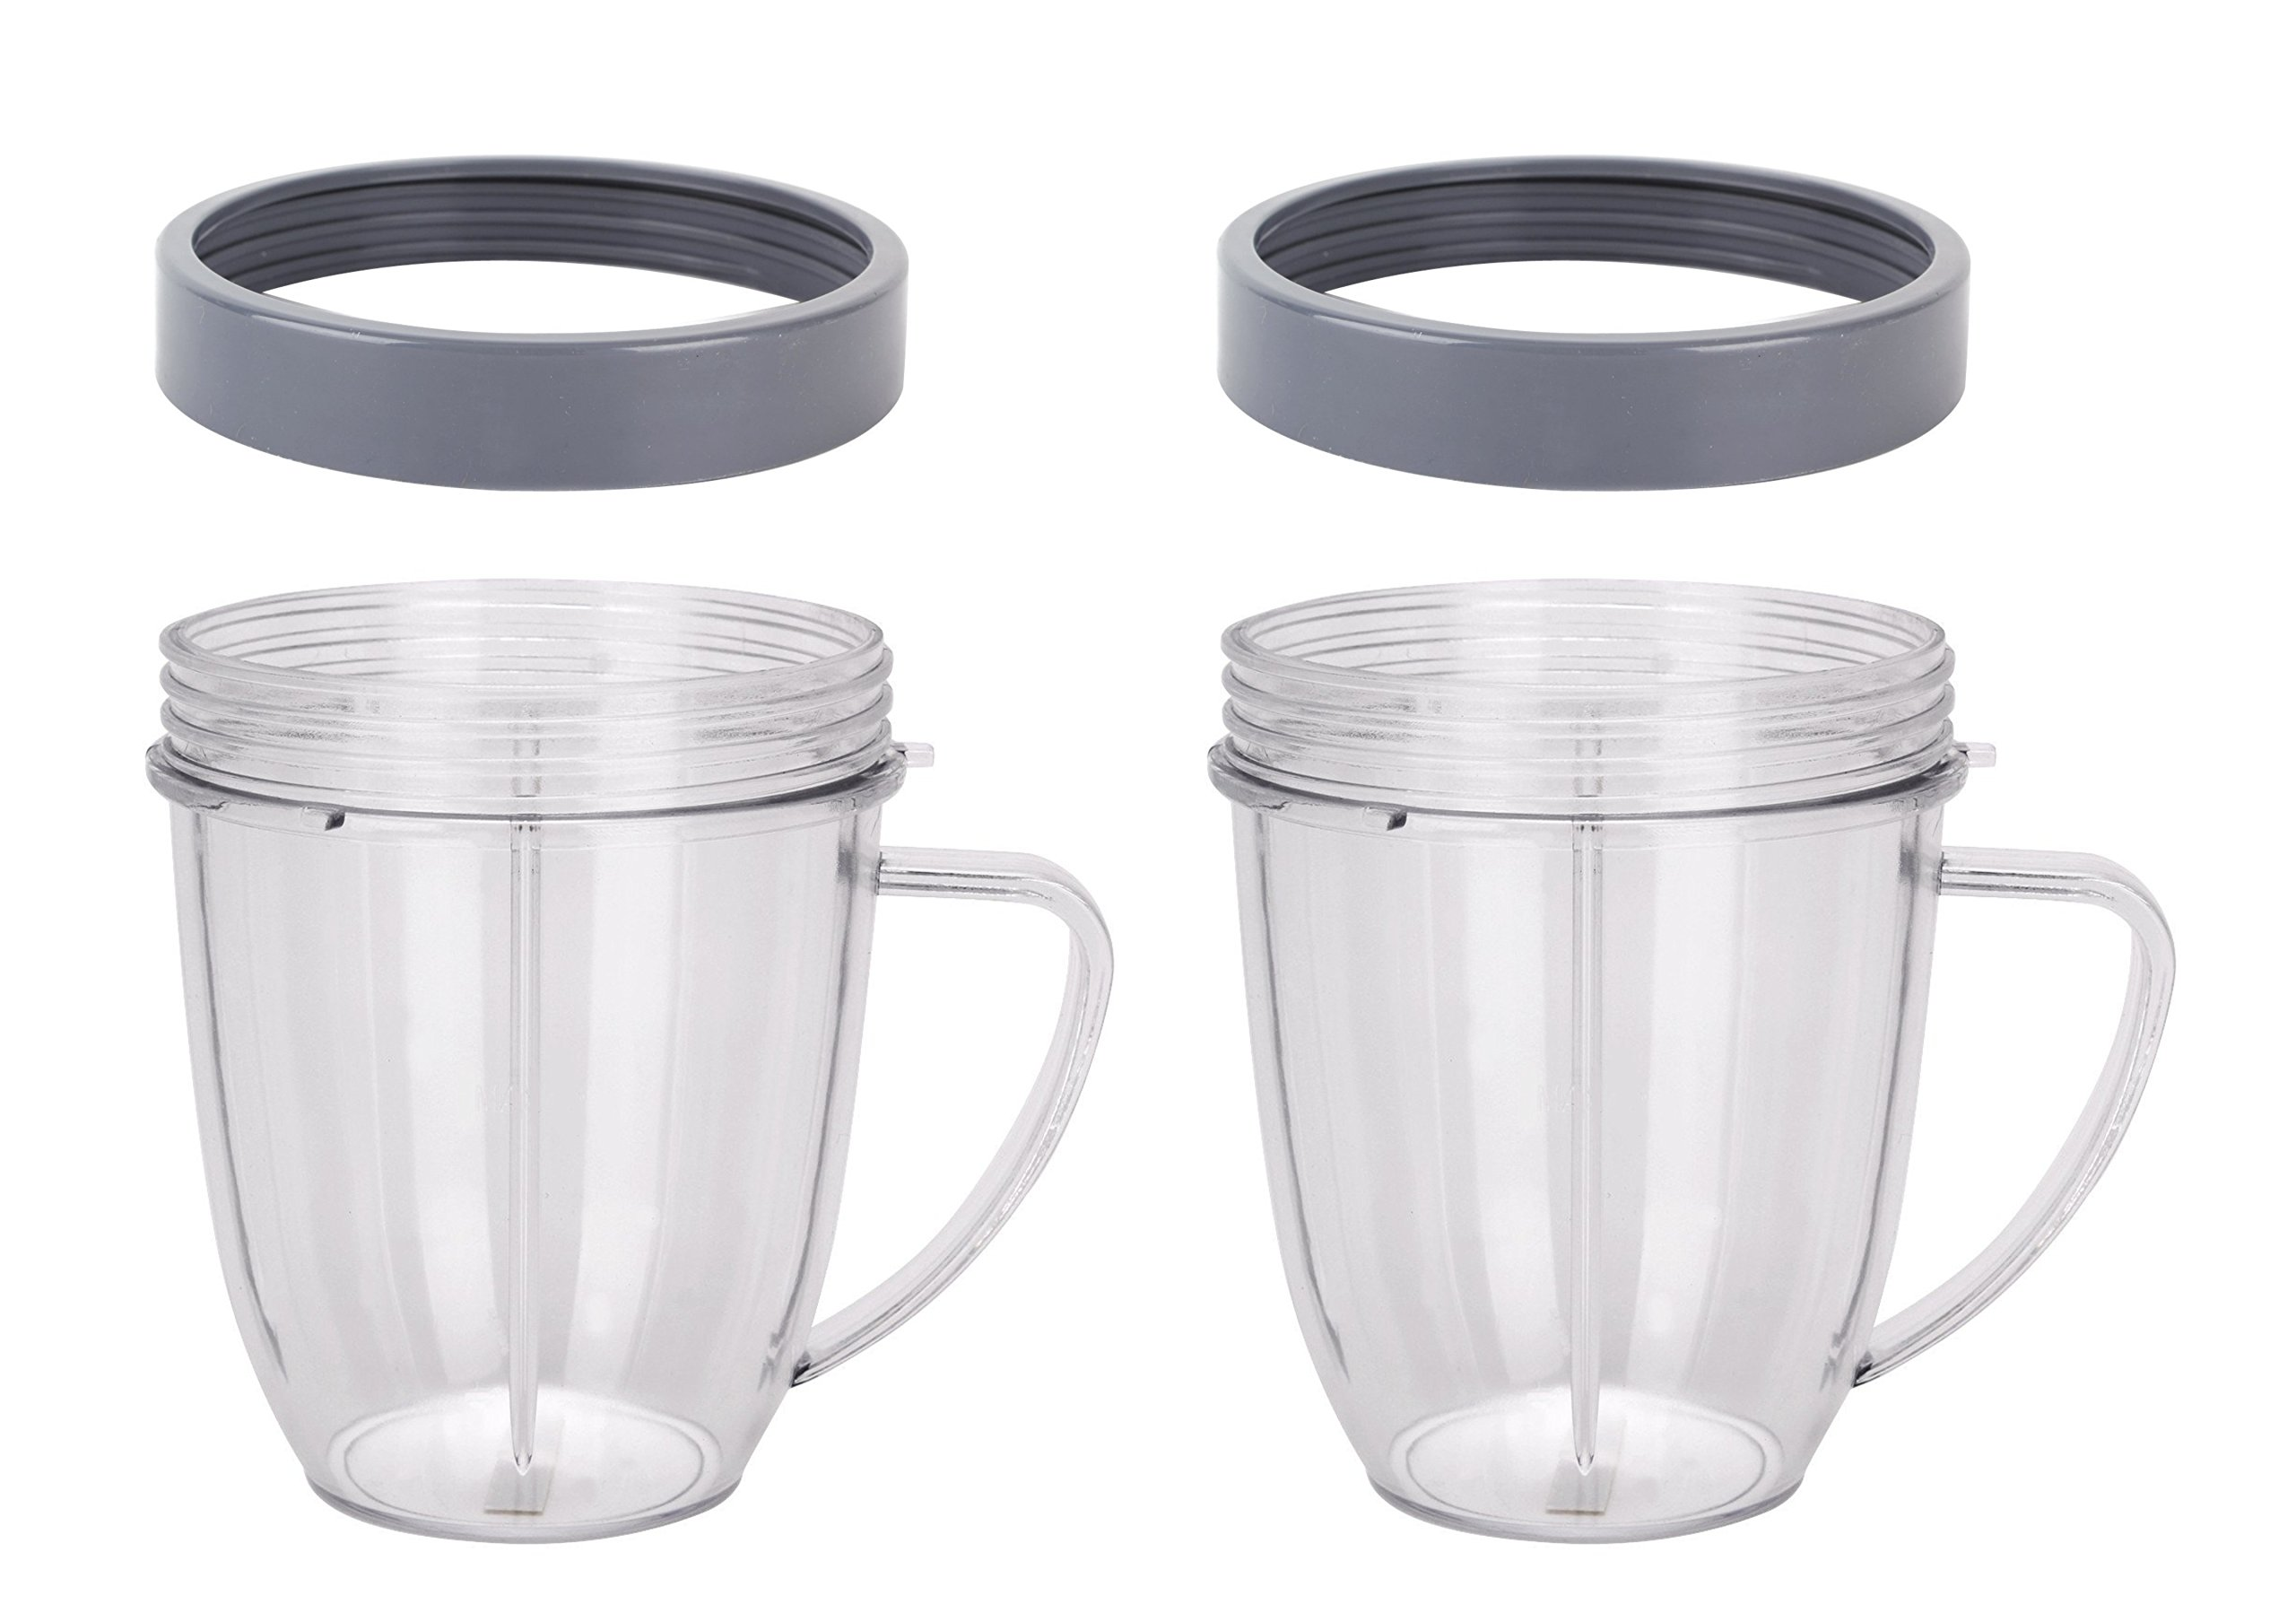 Preferred Parts Replacement for Nutribullet Cups. 18 oz NutriBullet Replacement Cups with Comfort Handel and Screw off Lip Ring (Pack of 2)